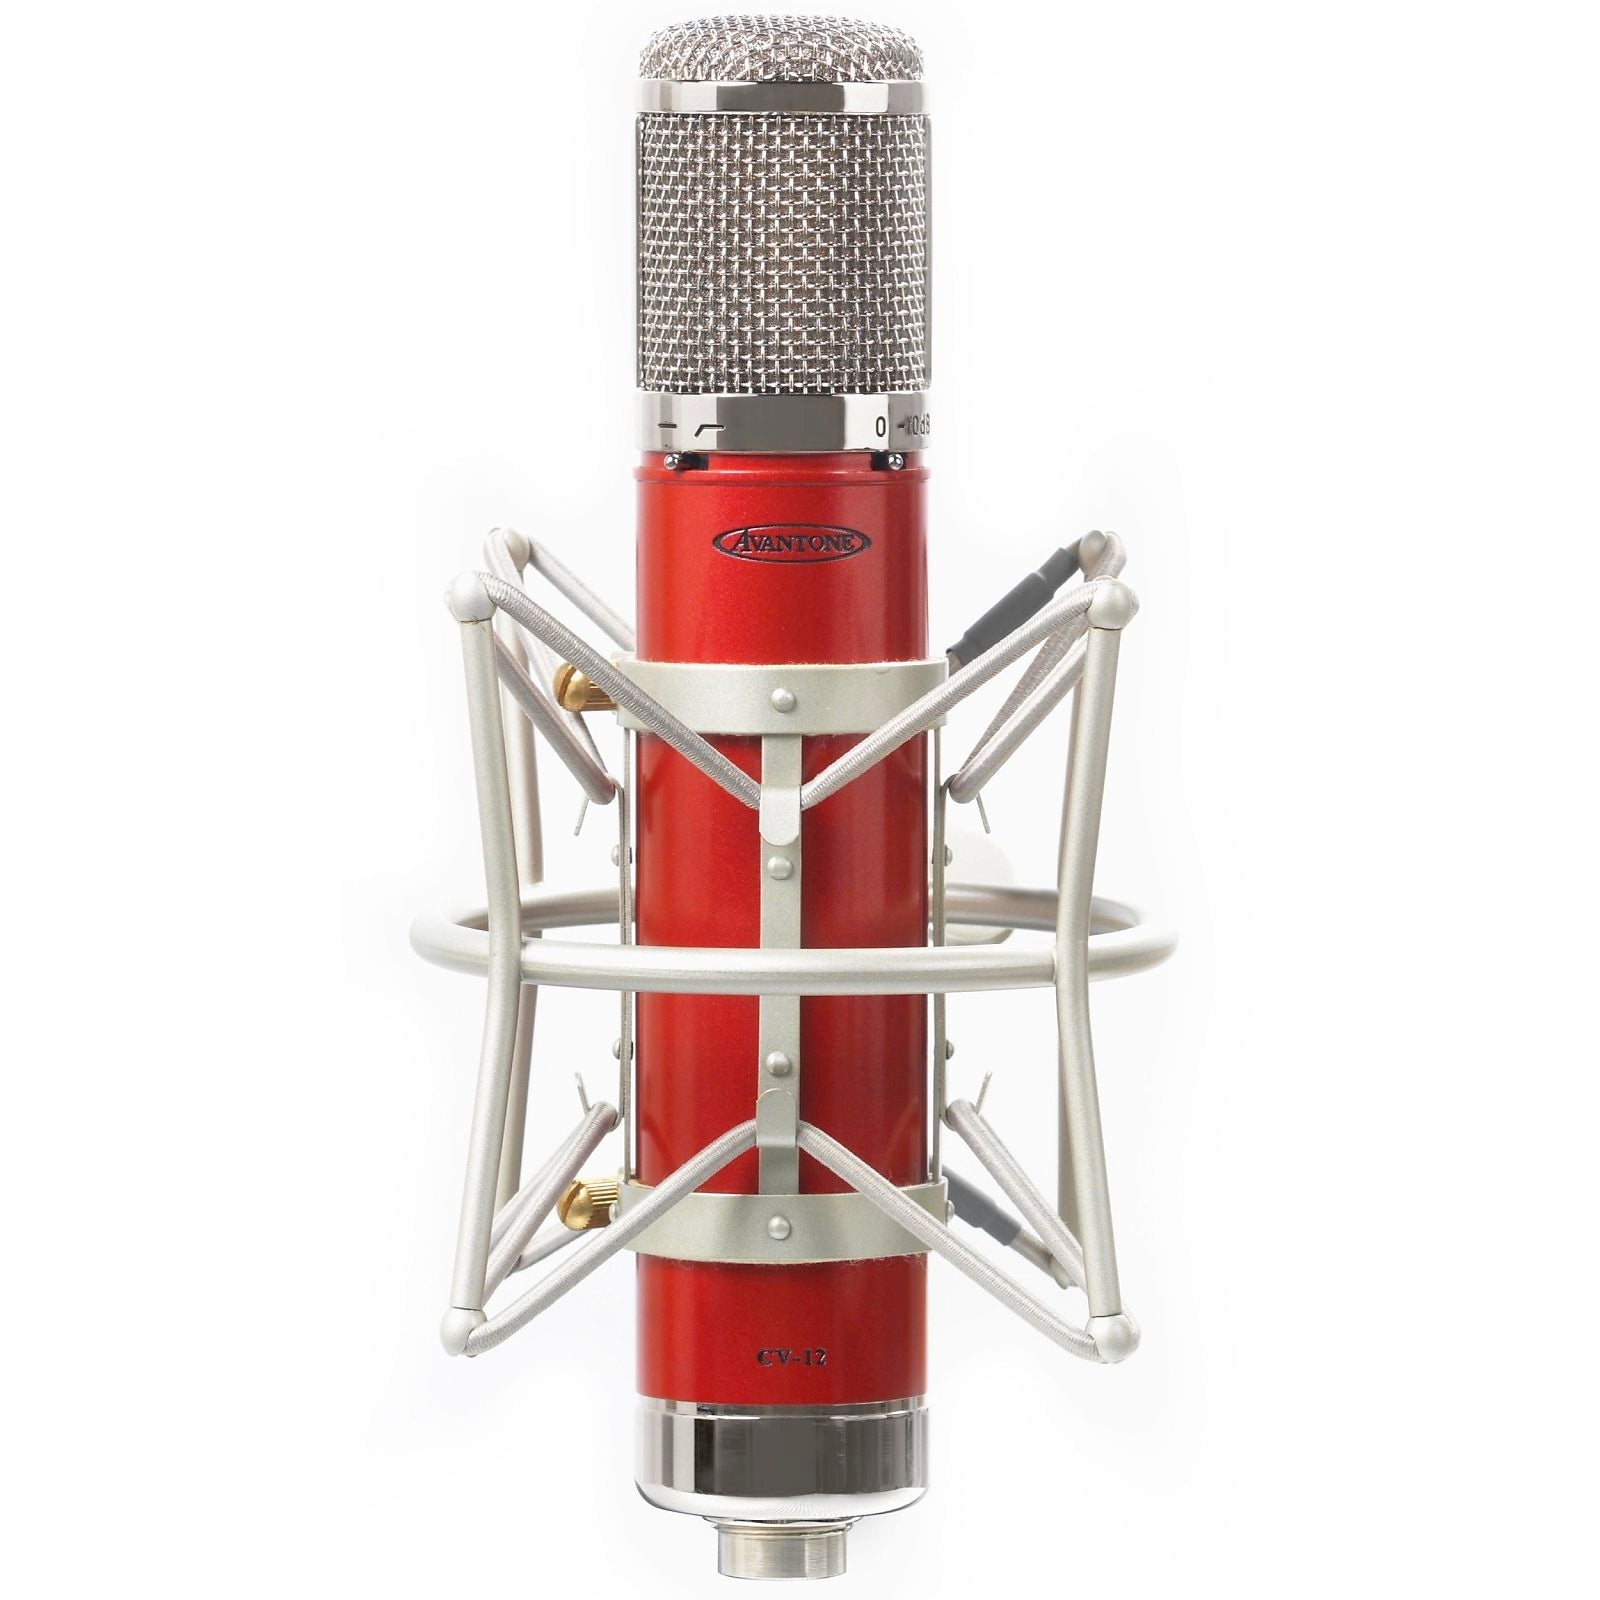 Avantone CV-12 Large-Diaphragm Multi-Pattern Tube Microphone